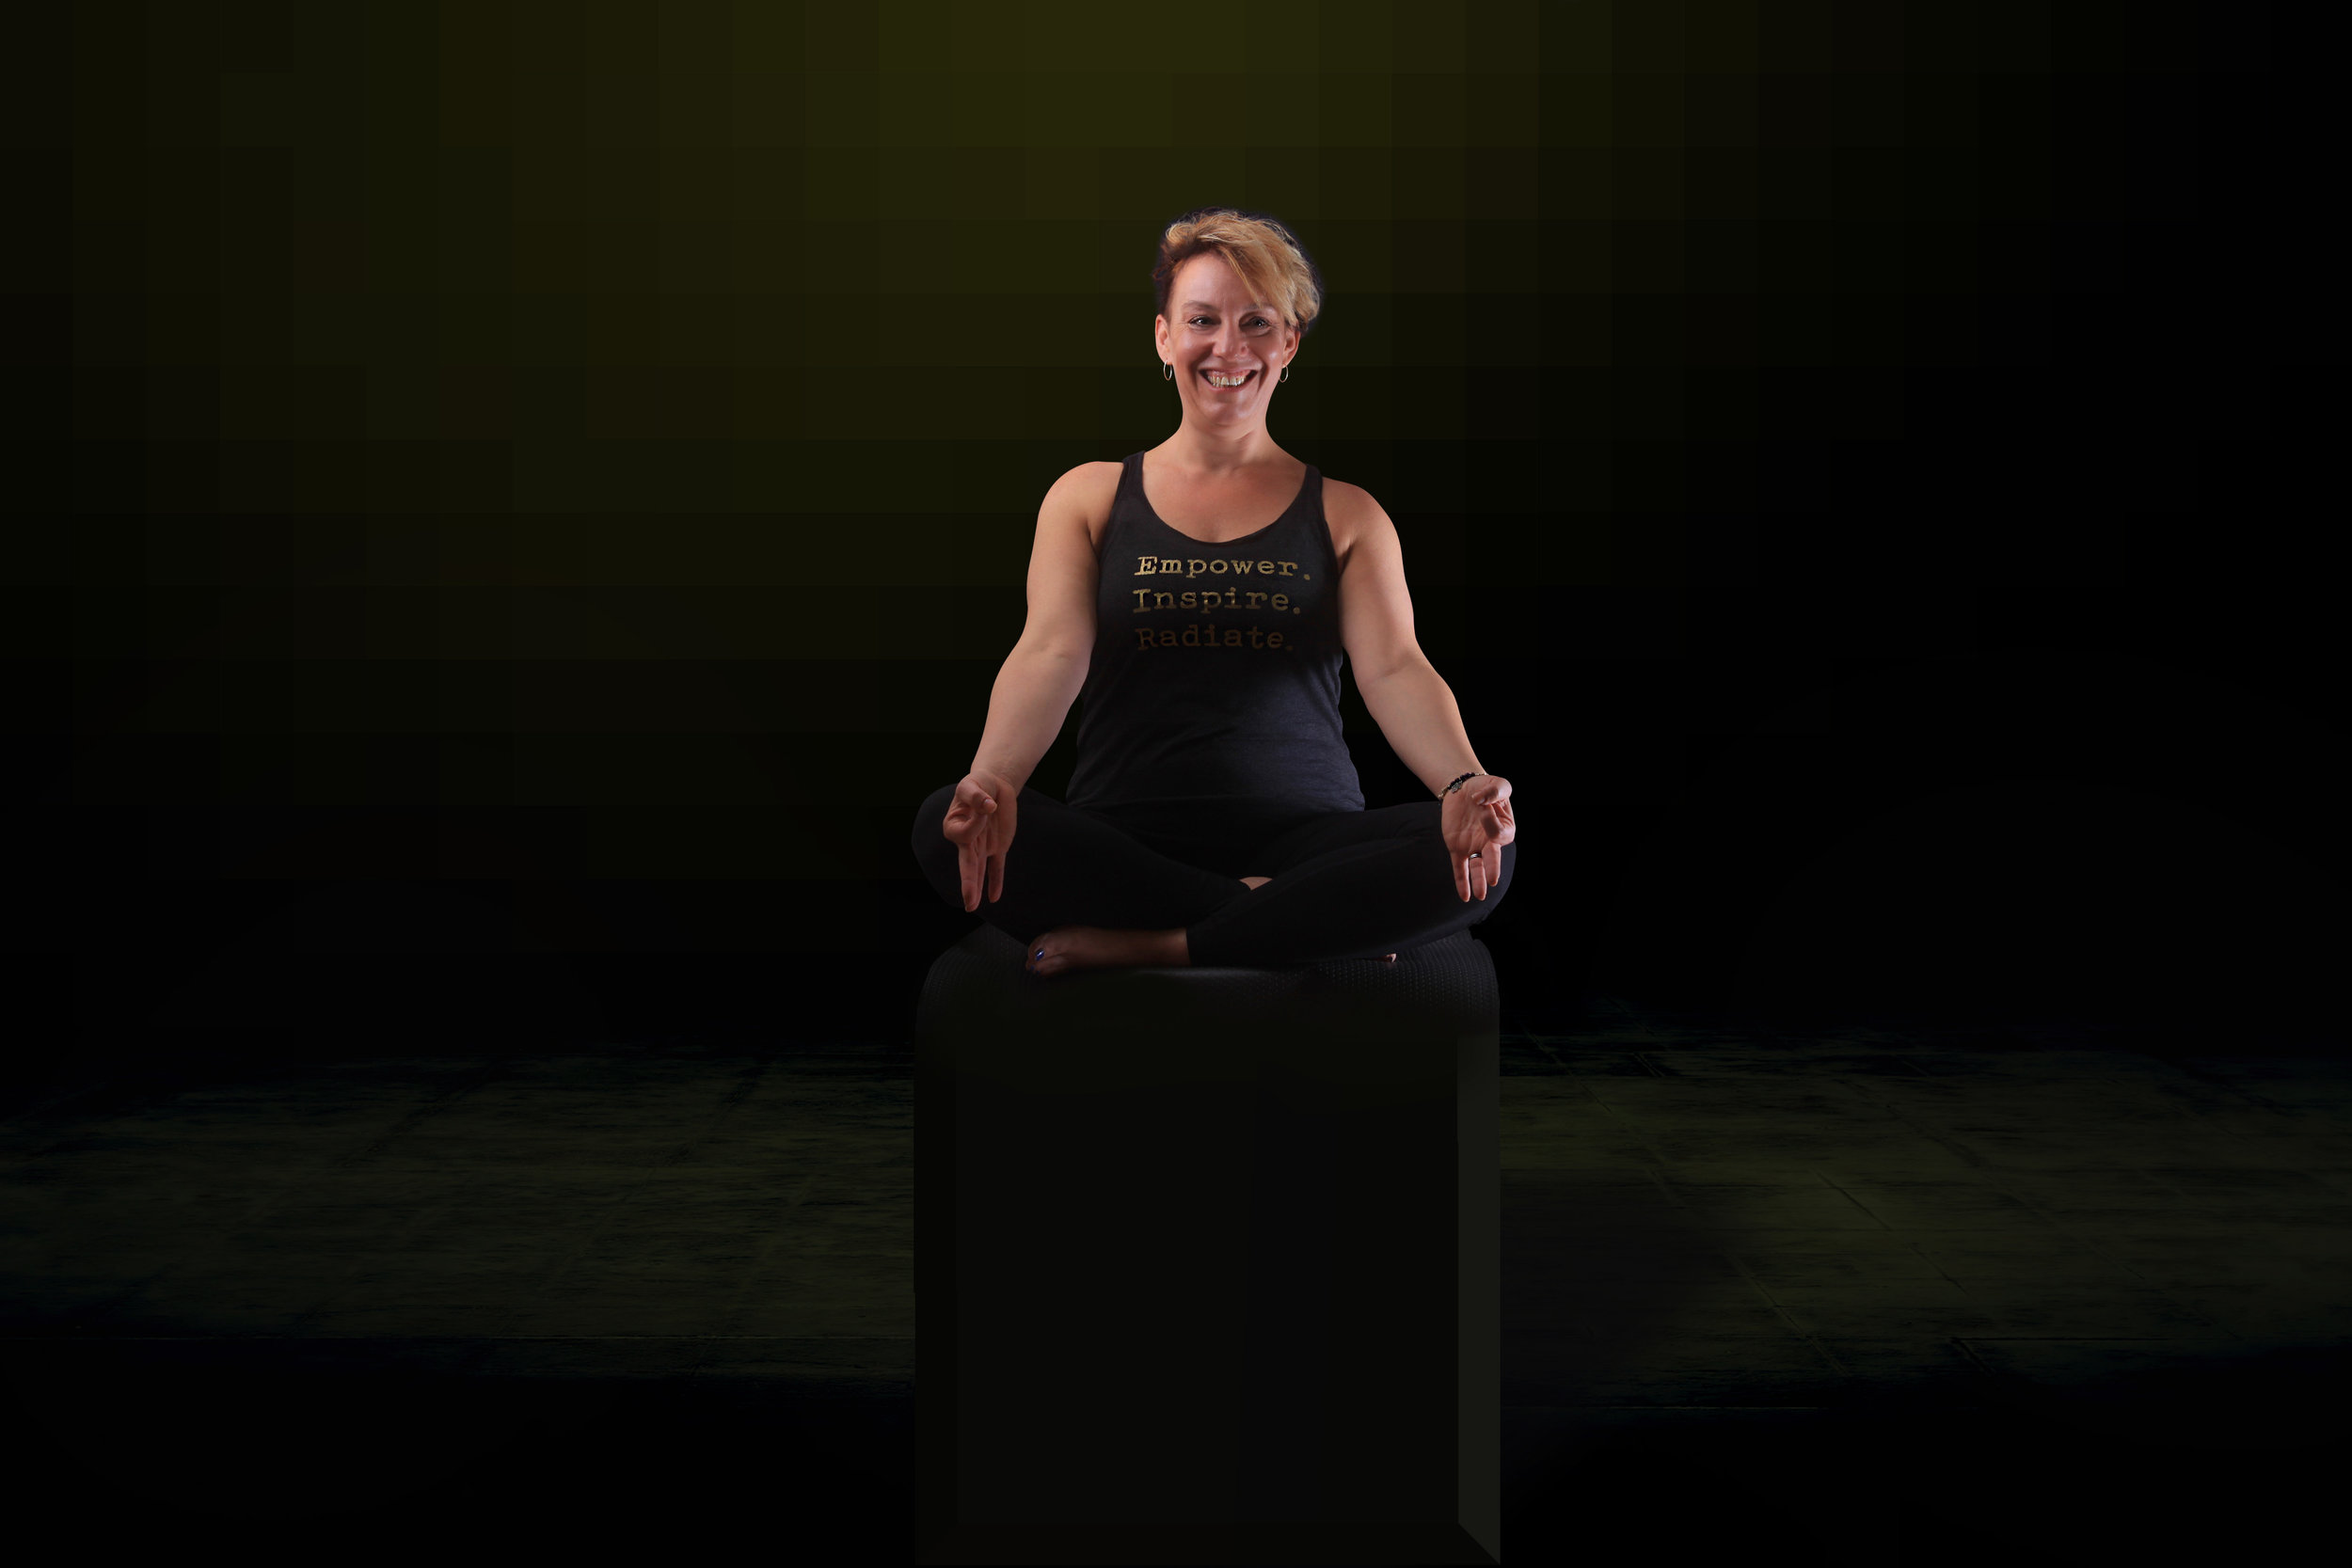 Mekea - Bedford, NYPhilosophy / inspiration / what can people expect in your class?A safe place to connect or reconnect to the body, mind and spirit through breath and asanas and help find balance.Classes taught at Saw Mill Club:Hatha/Vinyasa flow, Restorative, Prenatal, Thai YogaExperience / Certifications:RYT 200 hr, RYT Prenatal, Lotus Palm Thai YogaWhat did you do before yoga?:Graphic Designer and News Paper Publisher